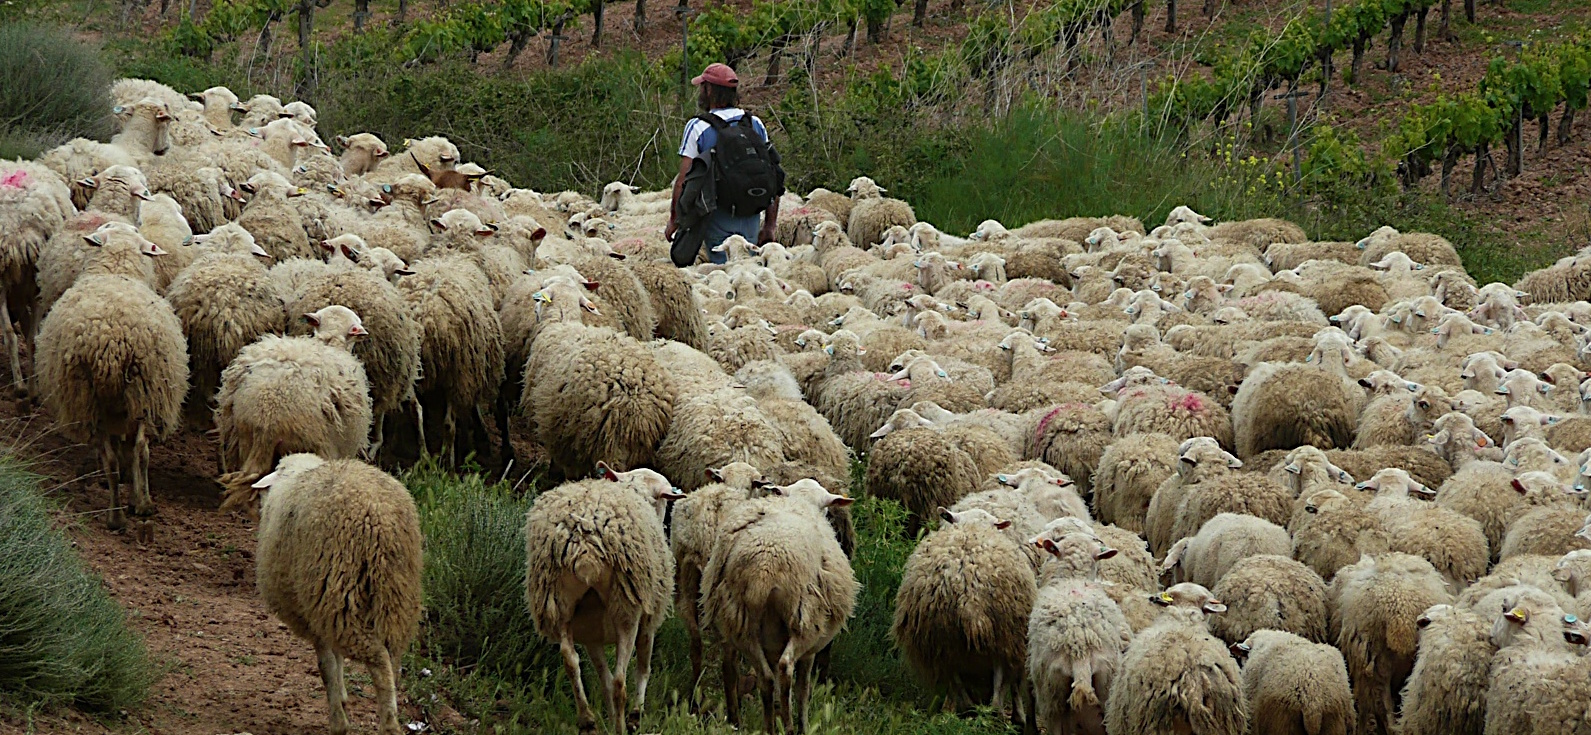 A shepherd walks in the middle of a flock of sheep, with the sheep crowding close.